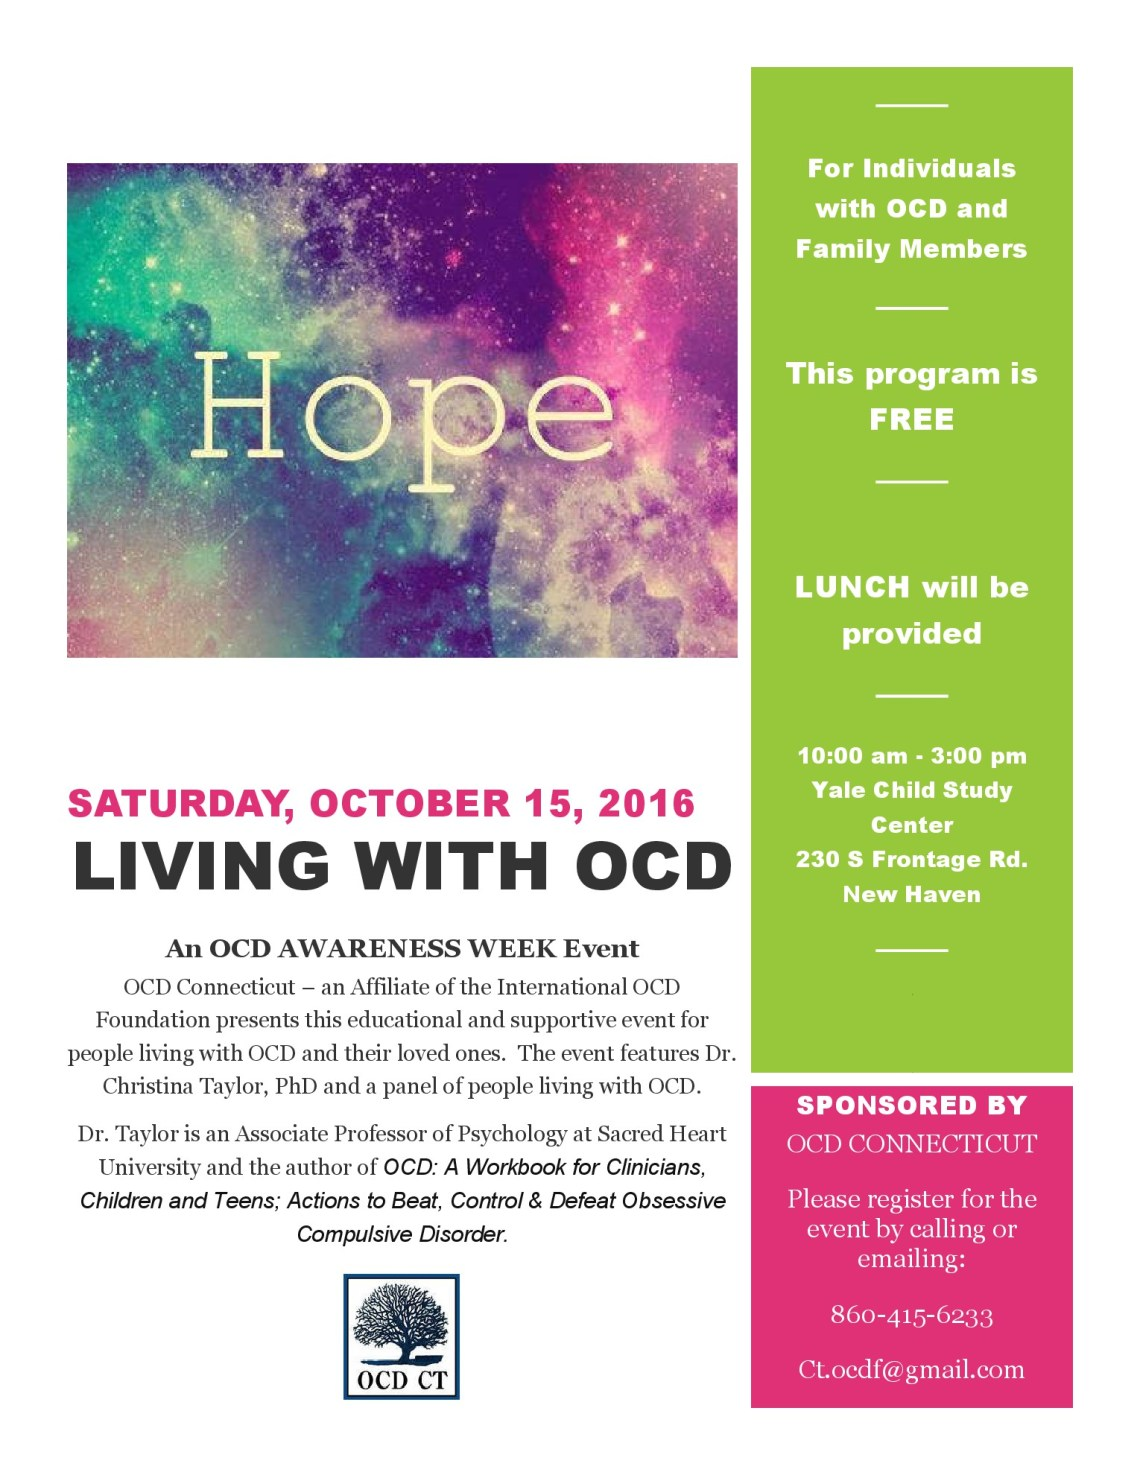 living_with_ocd_event_2016